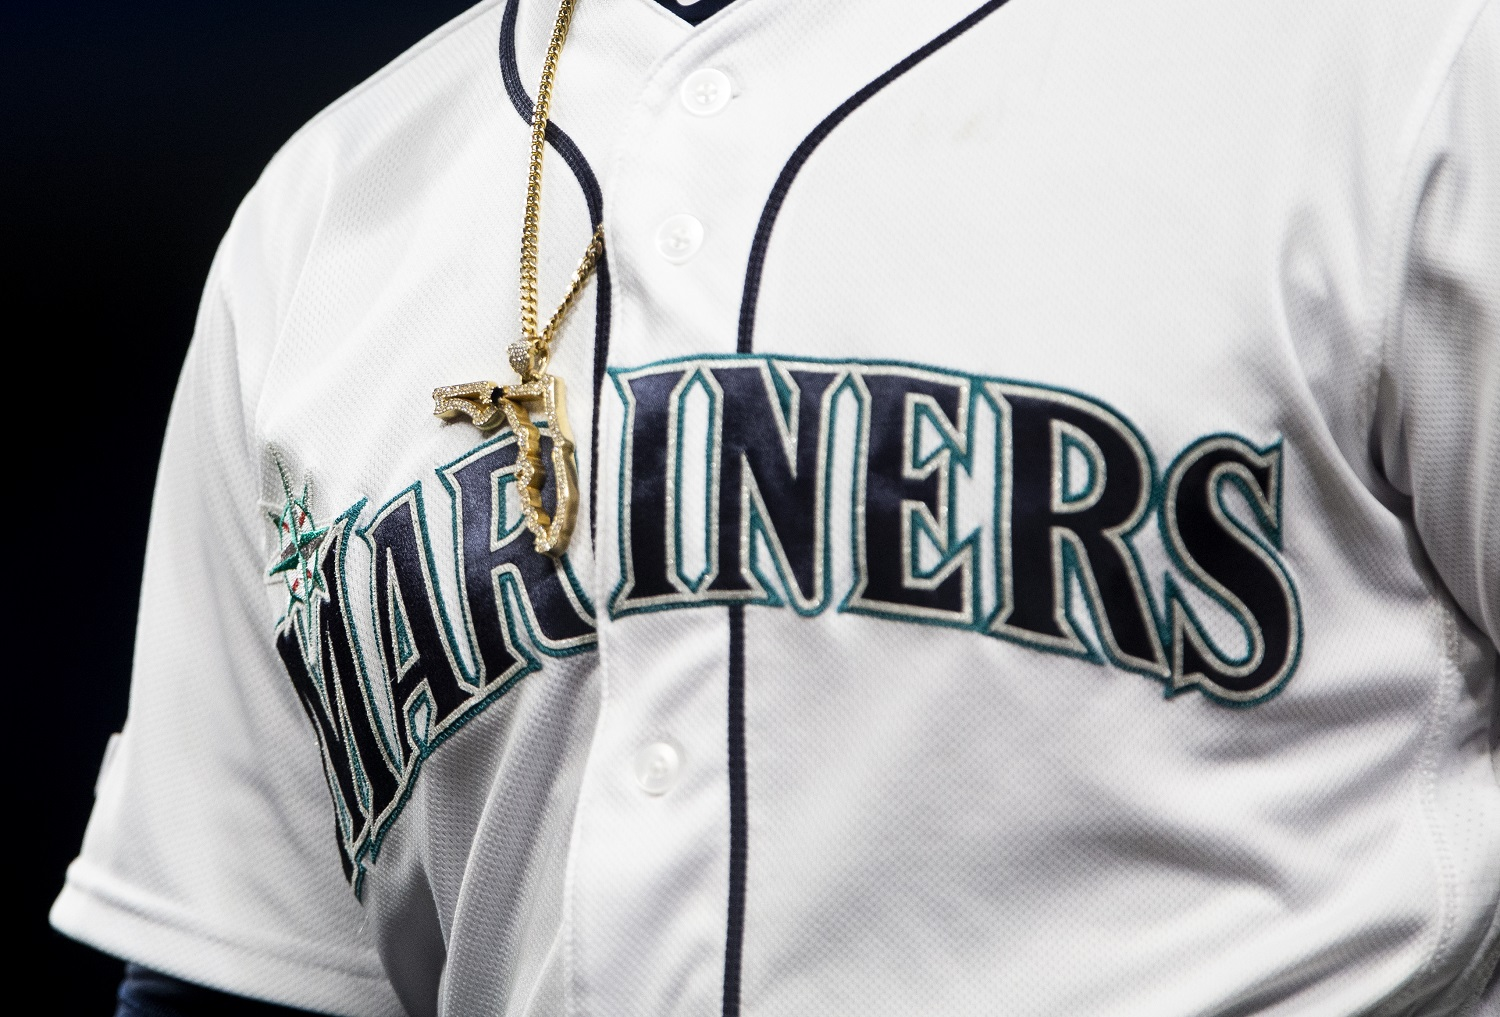 Seattle Mariners CEO Kevin Mather's Blunder Could Cost MLB Tens of Millions of Dollars